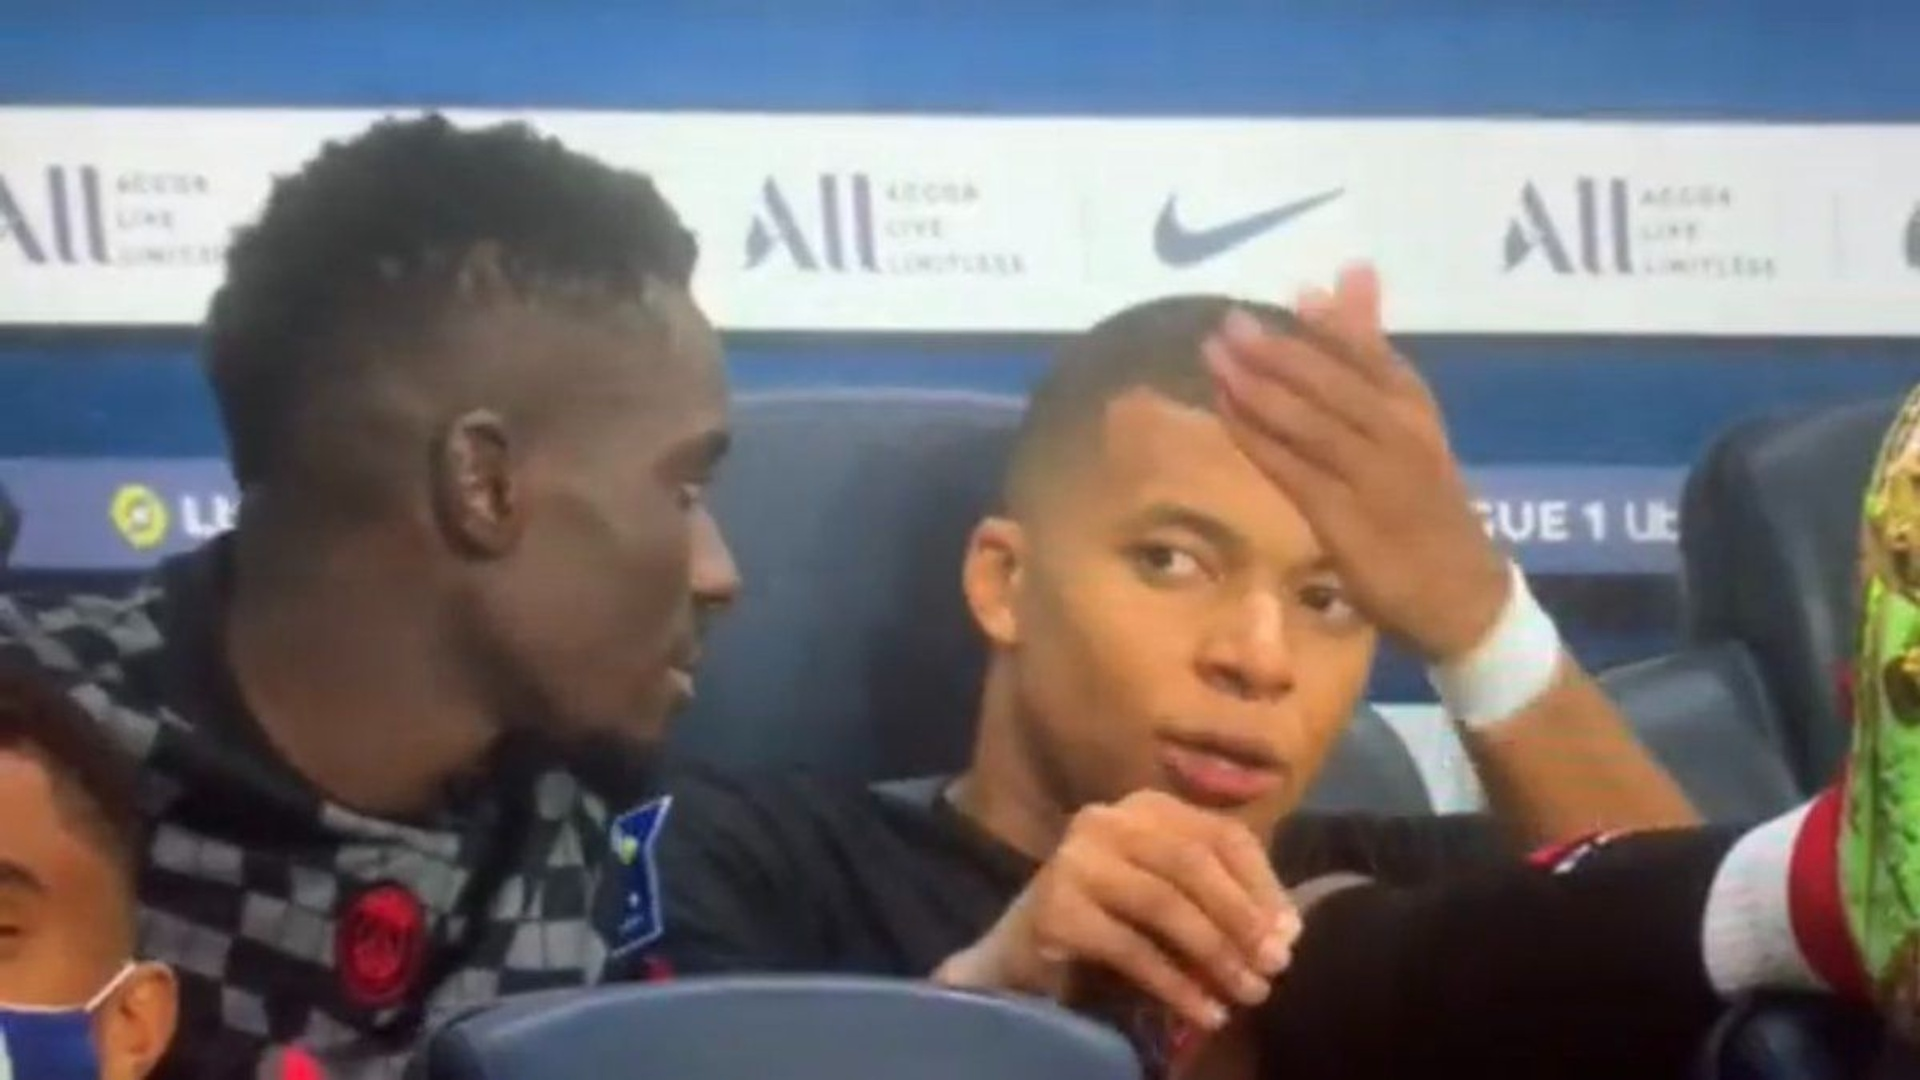 In the video, Mbappe gets angry because of Neymar